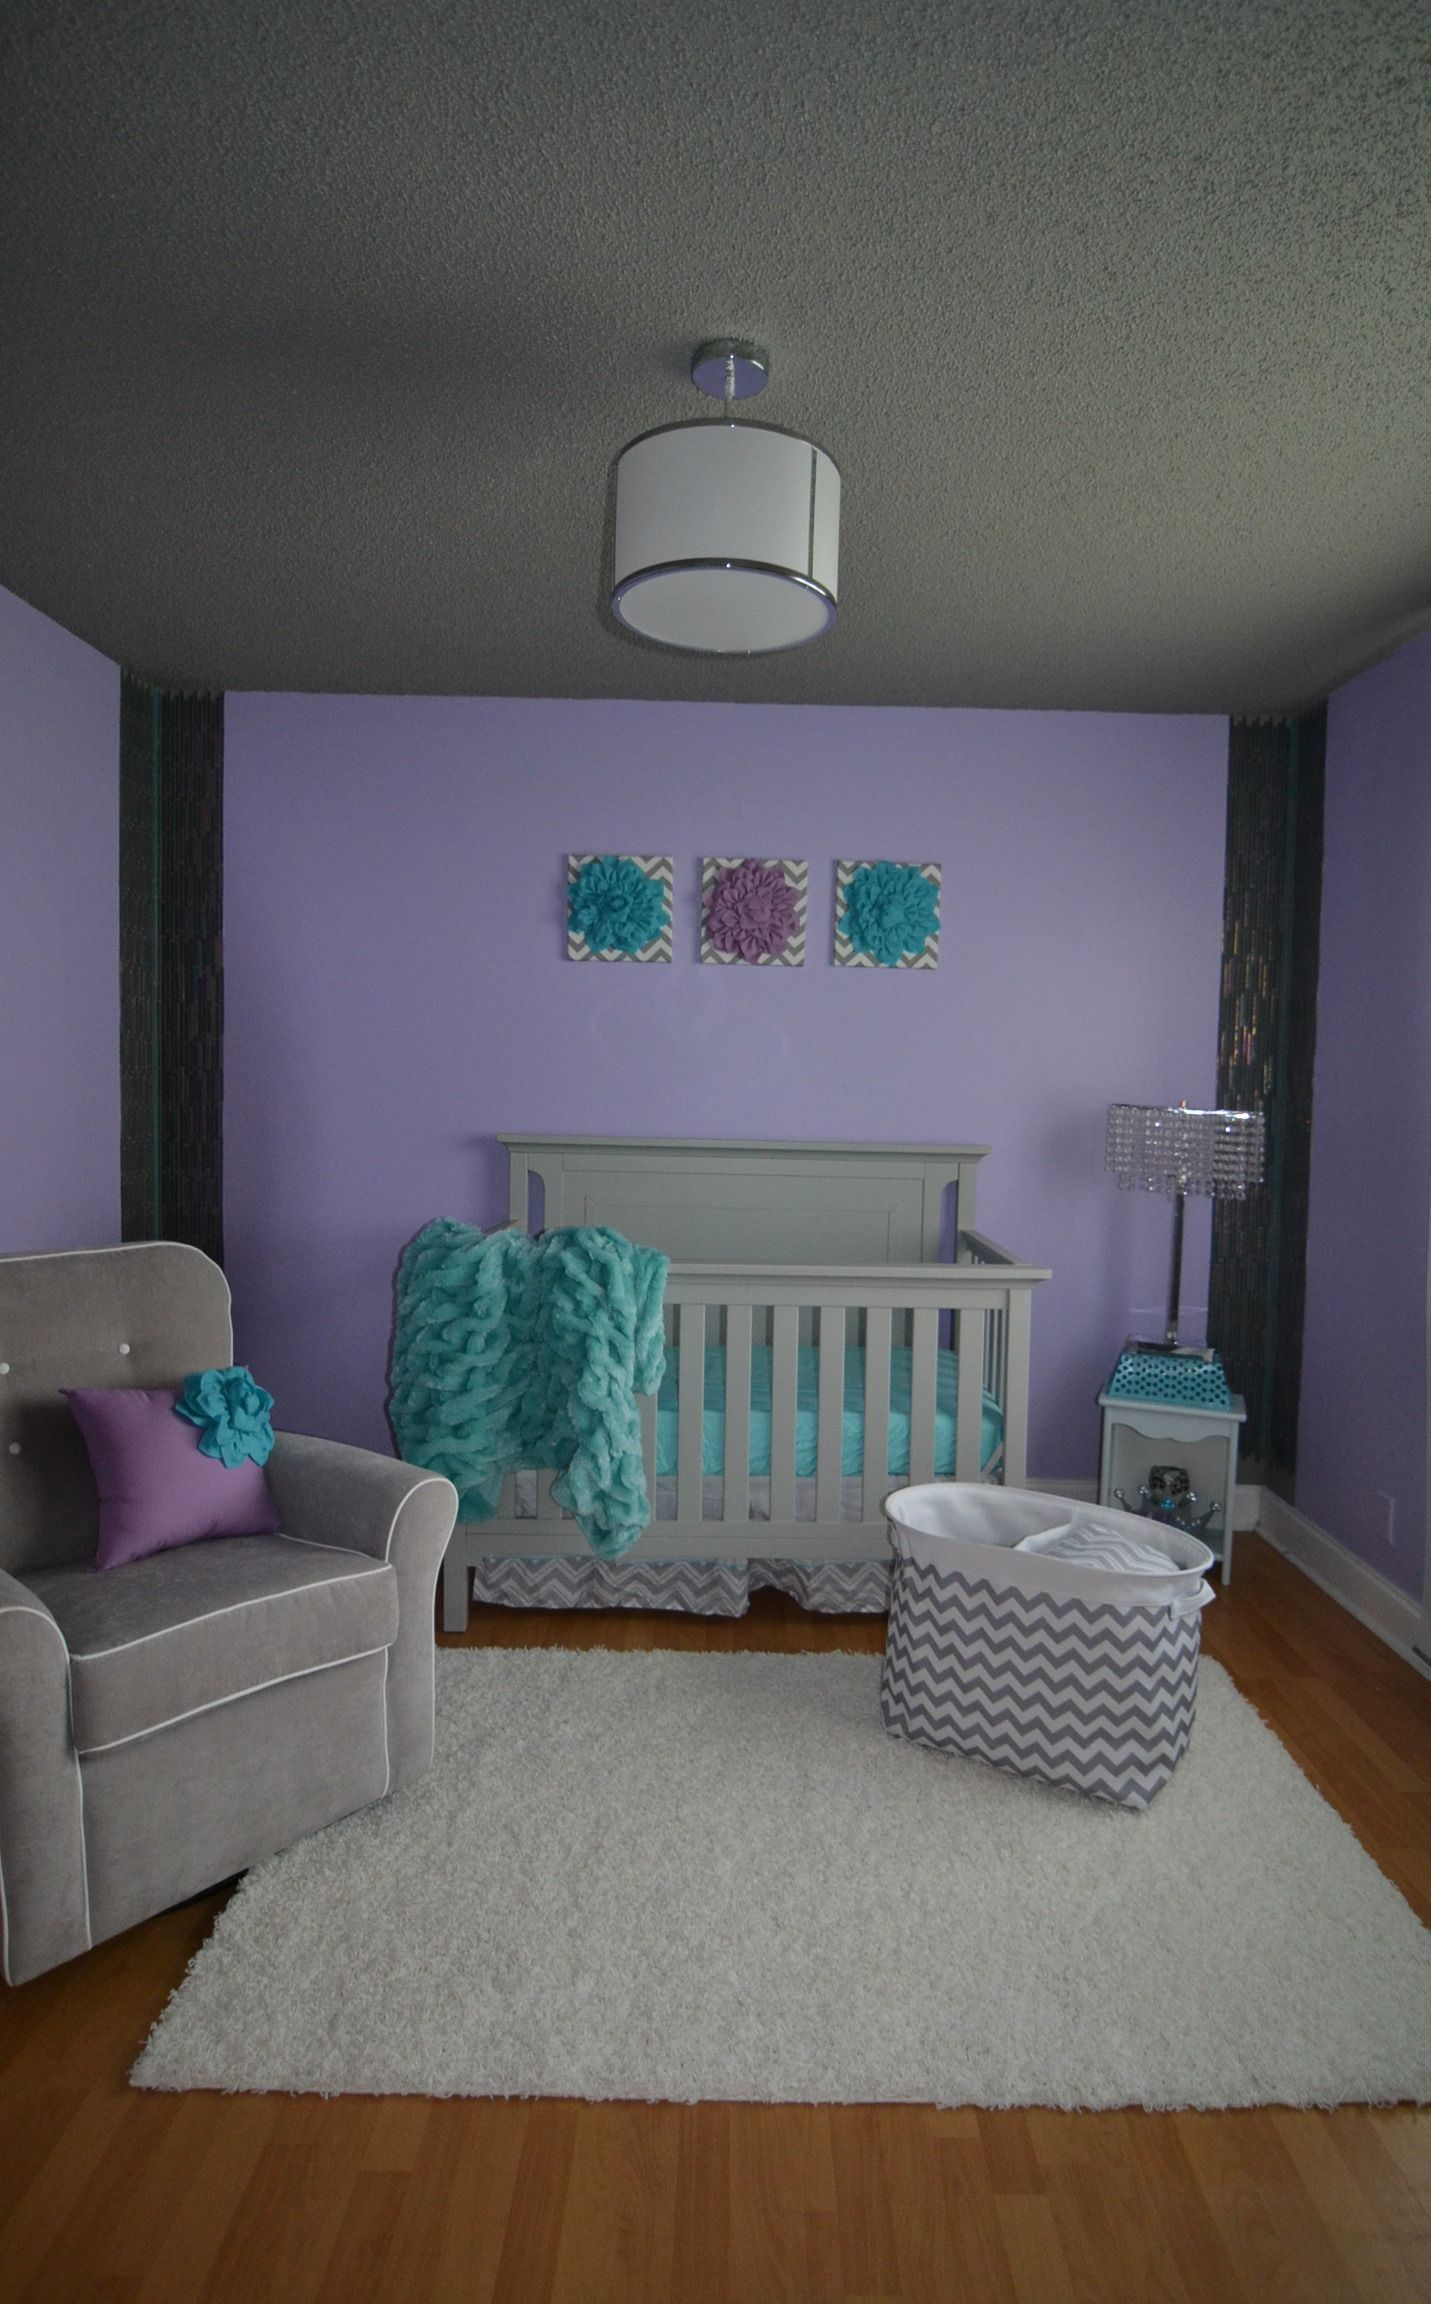 Grey Purple And Blue Nursery Room Gl Florescent Tile Columns Down The Corners Of Wall With Ceiling Inspired By Acrylic Paints I Found In A